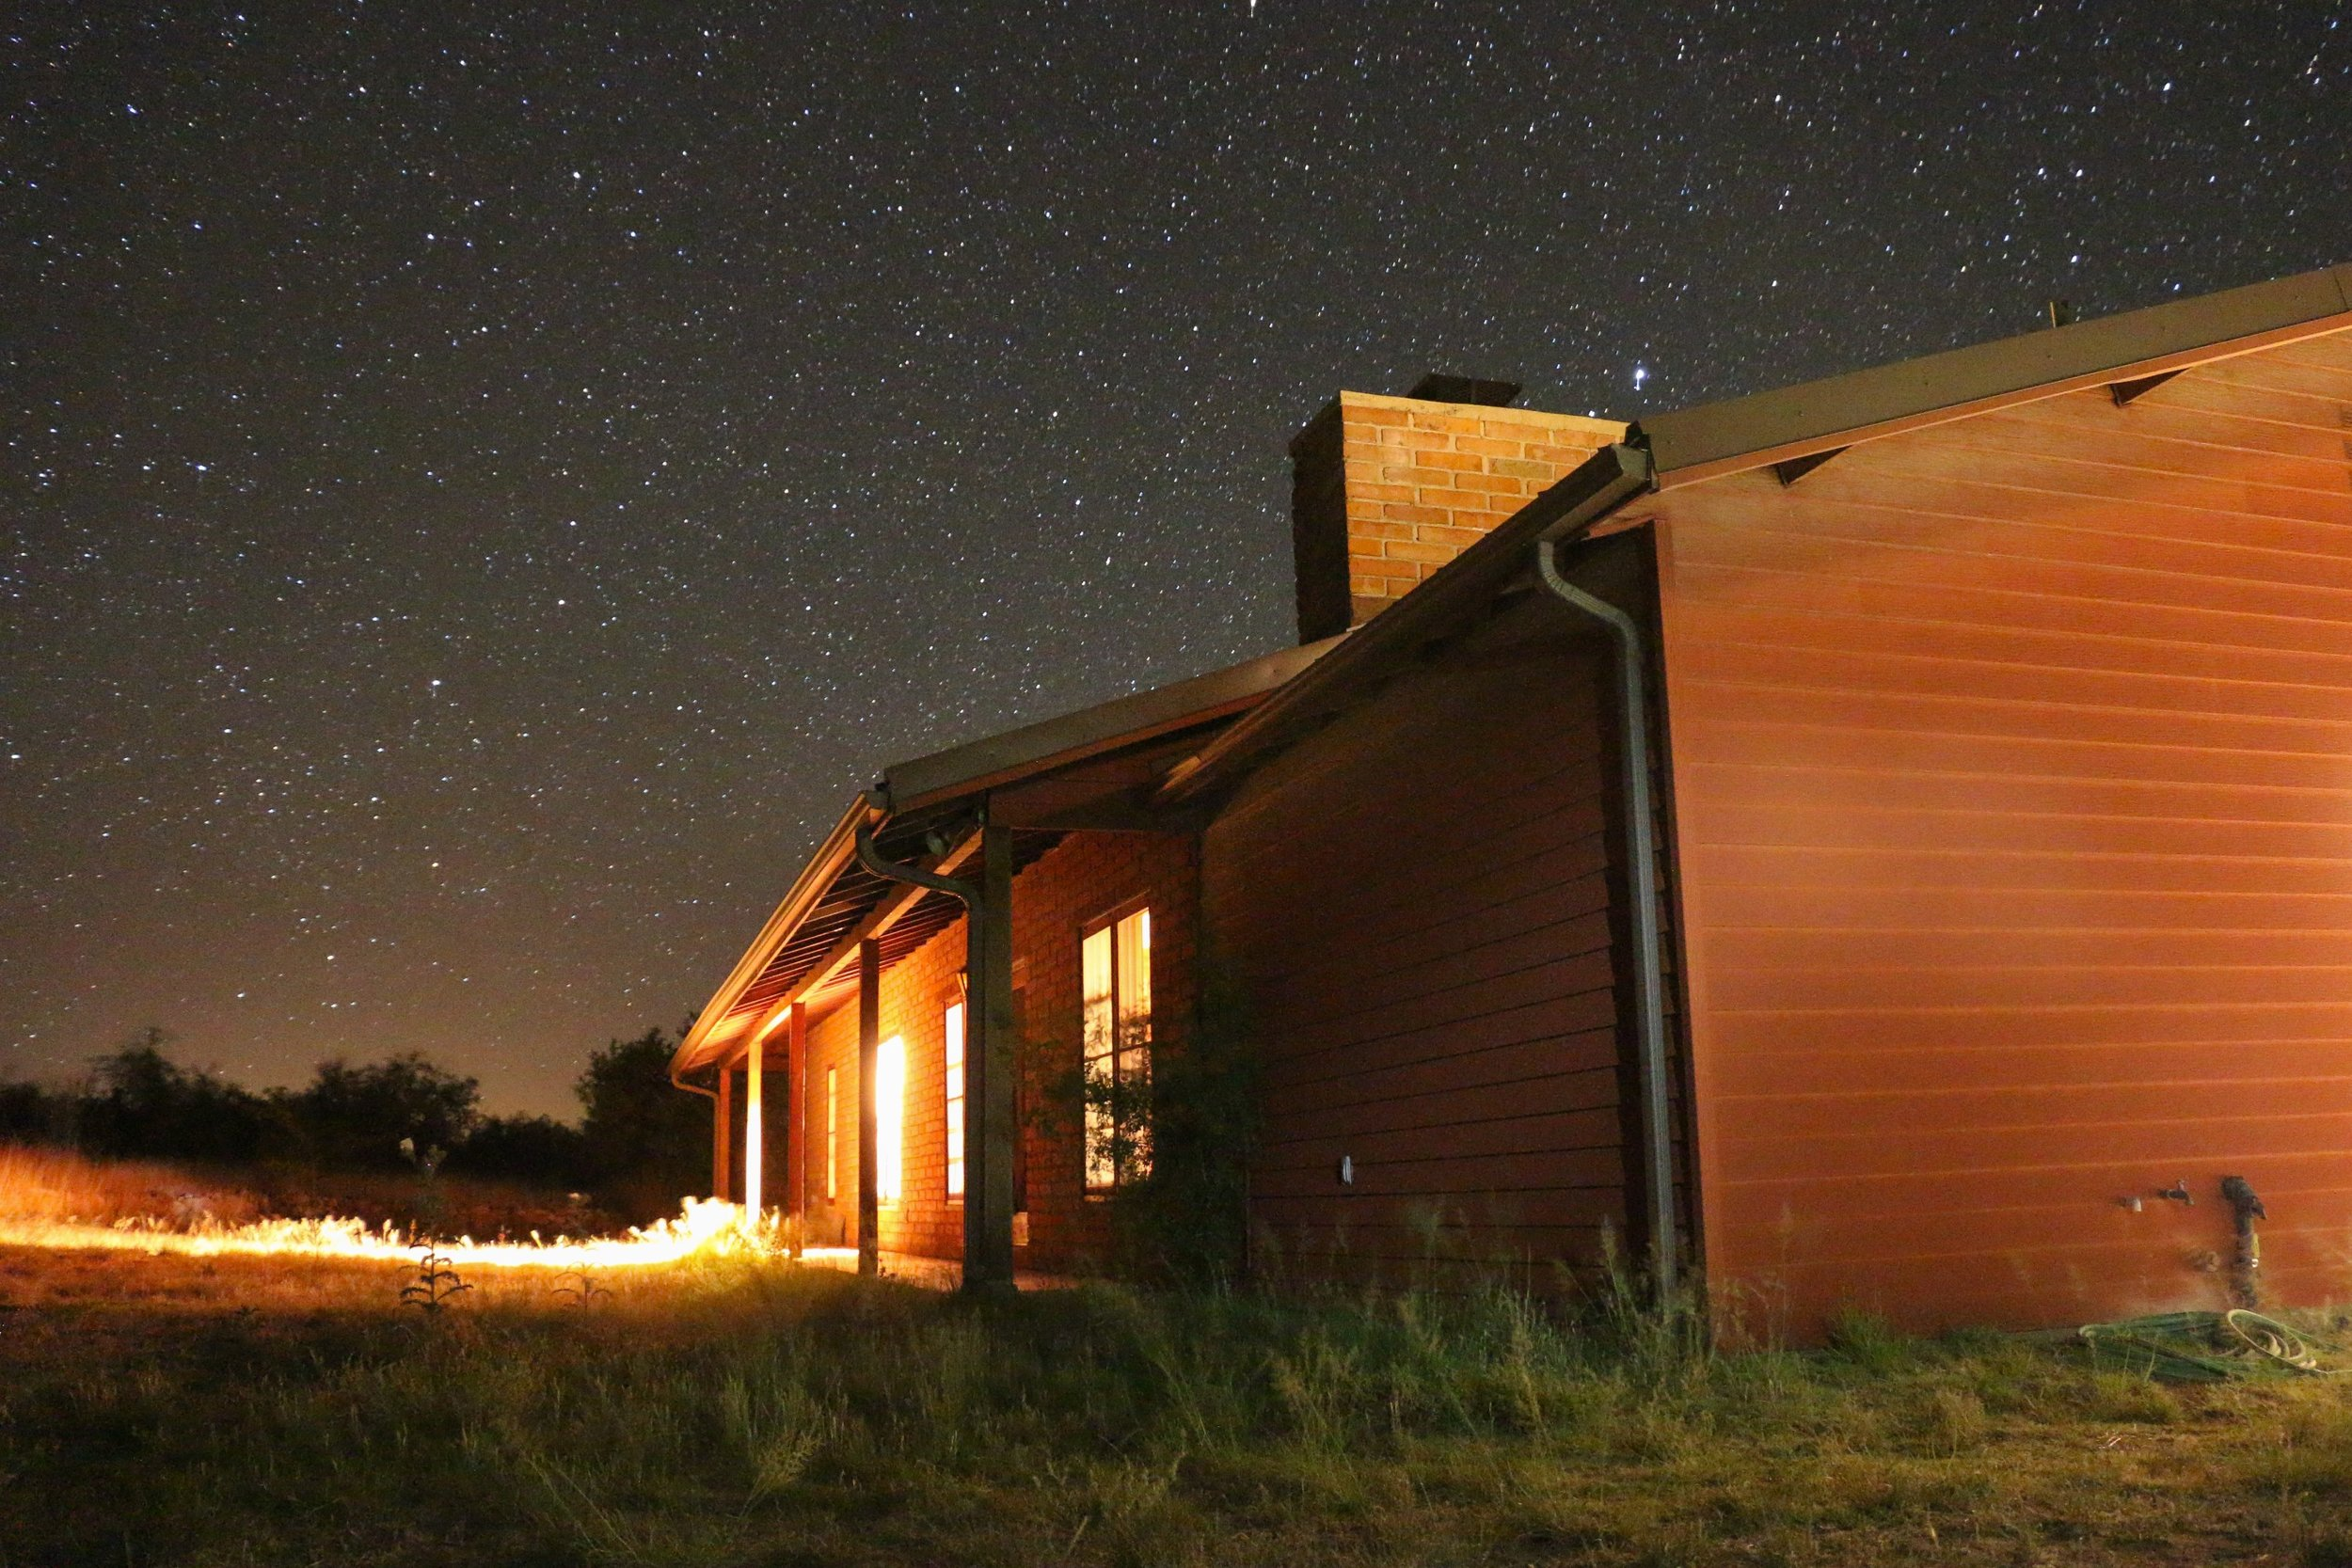 The night sky at Half Moon Ranch was nothing short of spectacular.